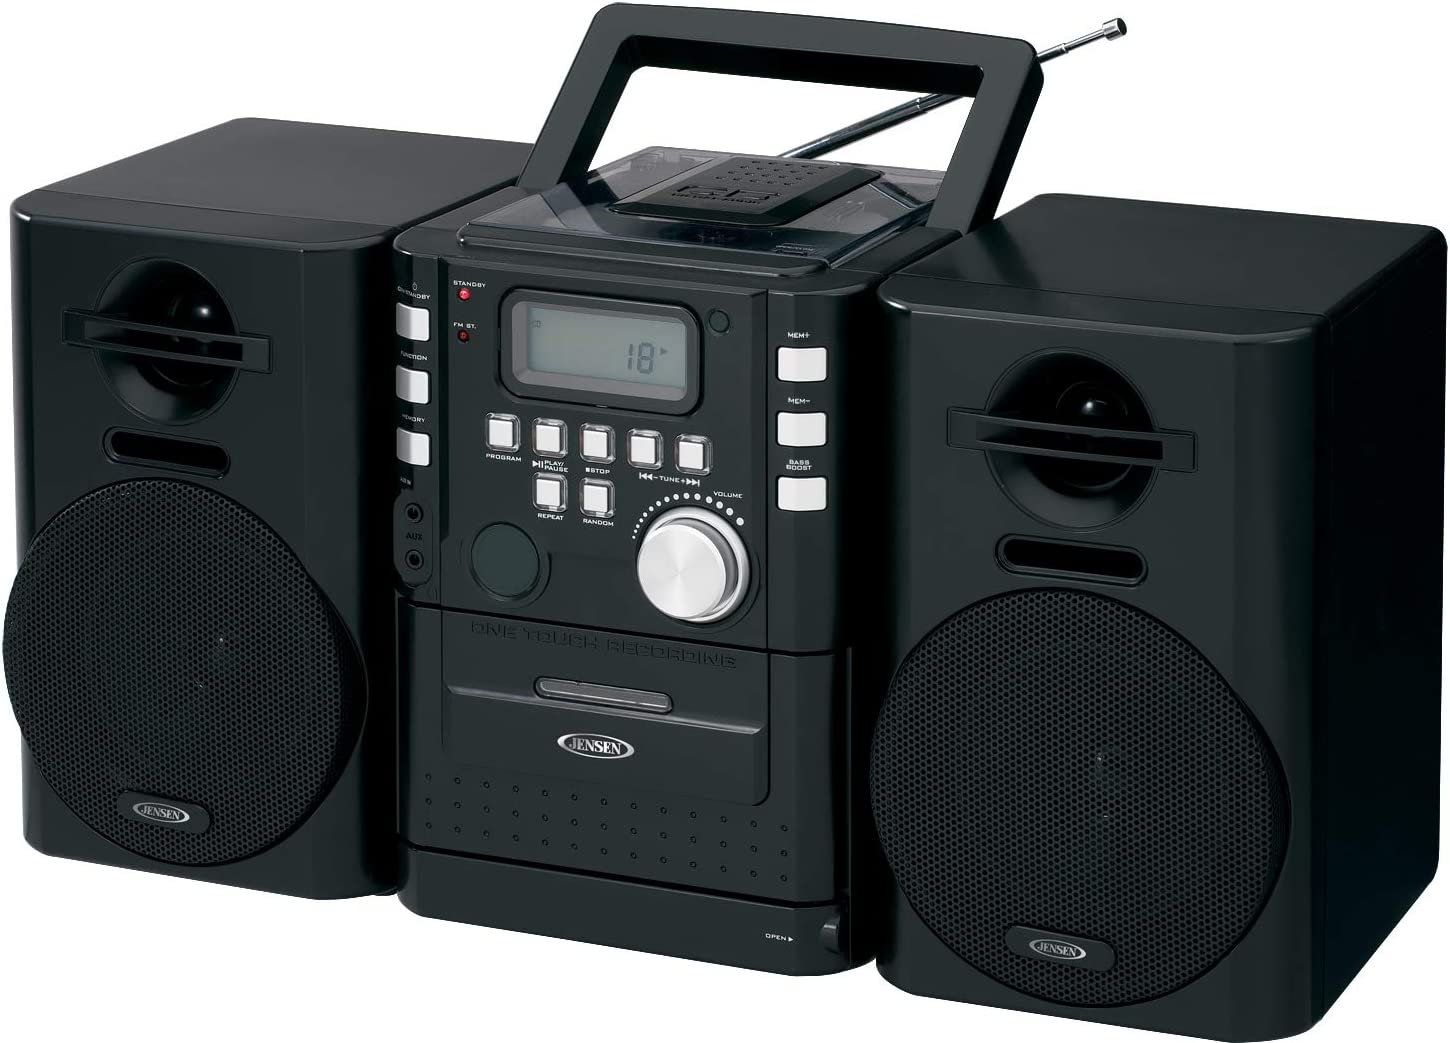 Jensen CD-725 San Francisco Mall Portable CD Music System Cassette with and Ster FM Import